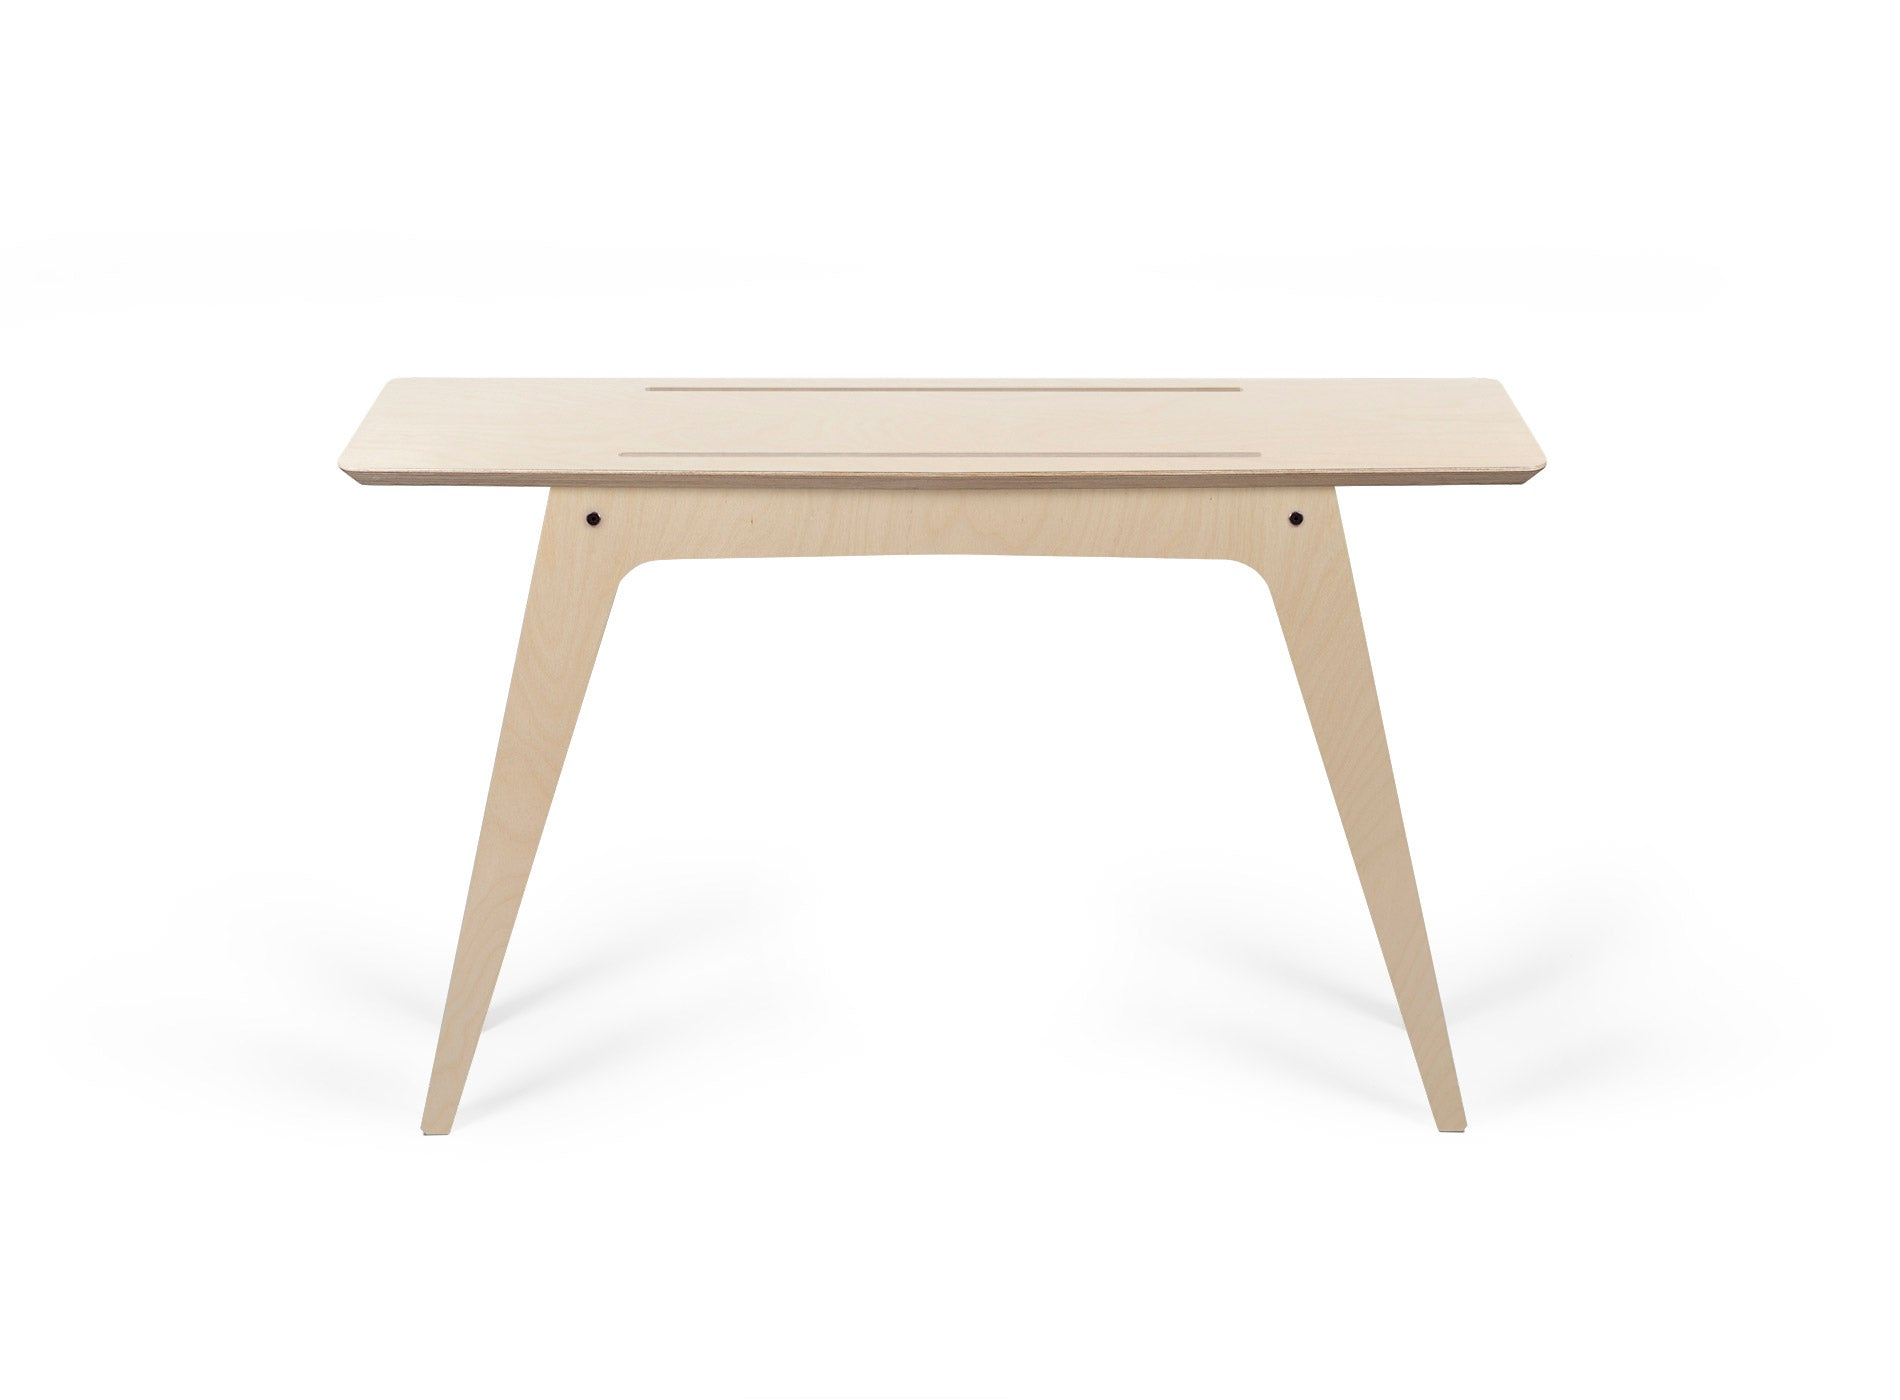 Caramba Console Table, Wood Top Full View